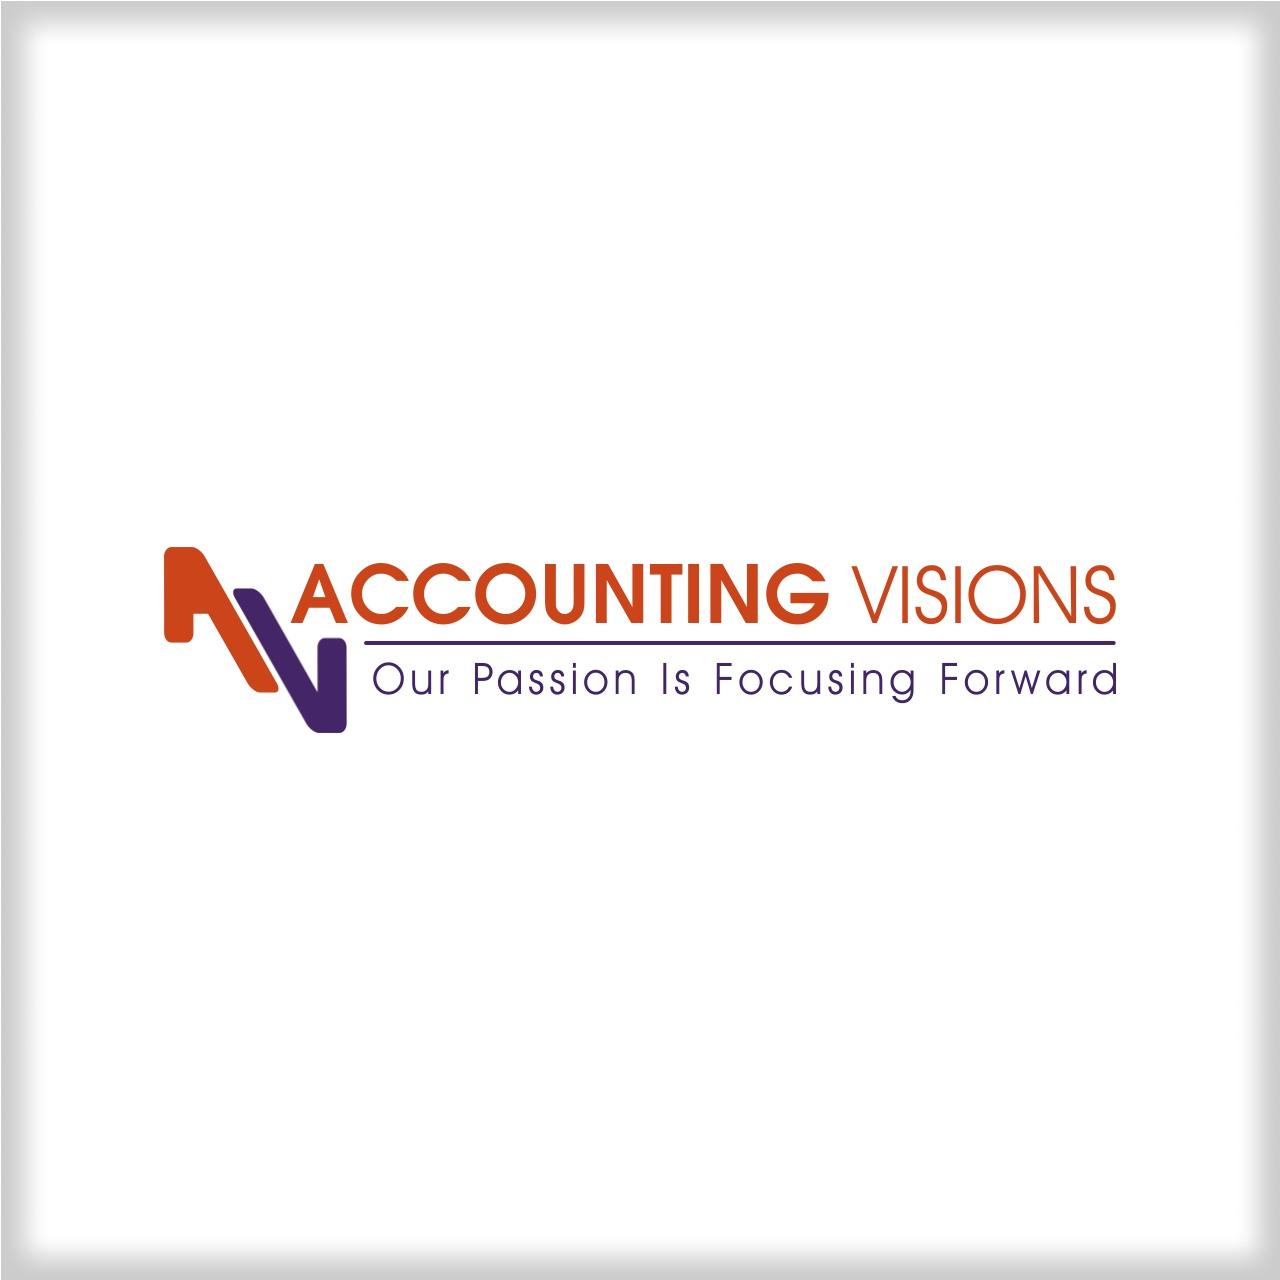 Logo Design by martinz - Entry No. 6 in the Logo Design Contest Accounting Visions.